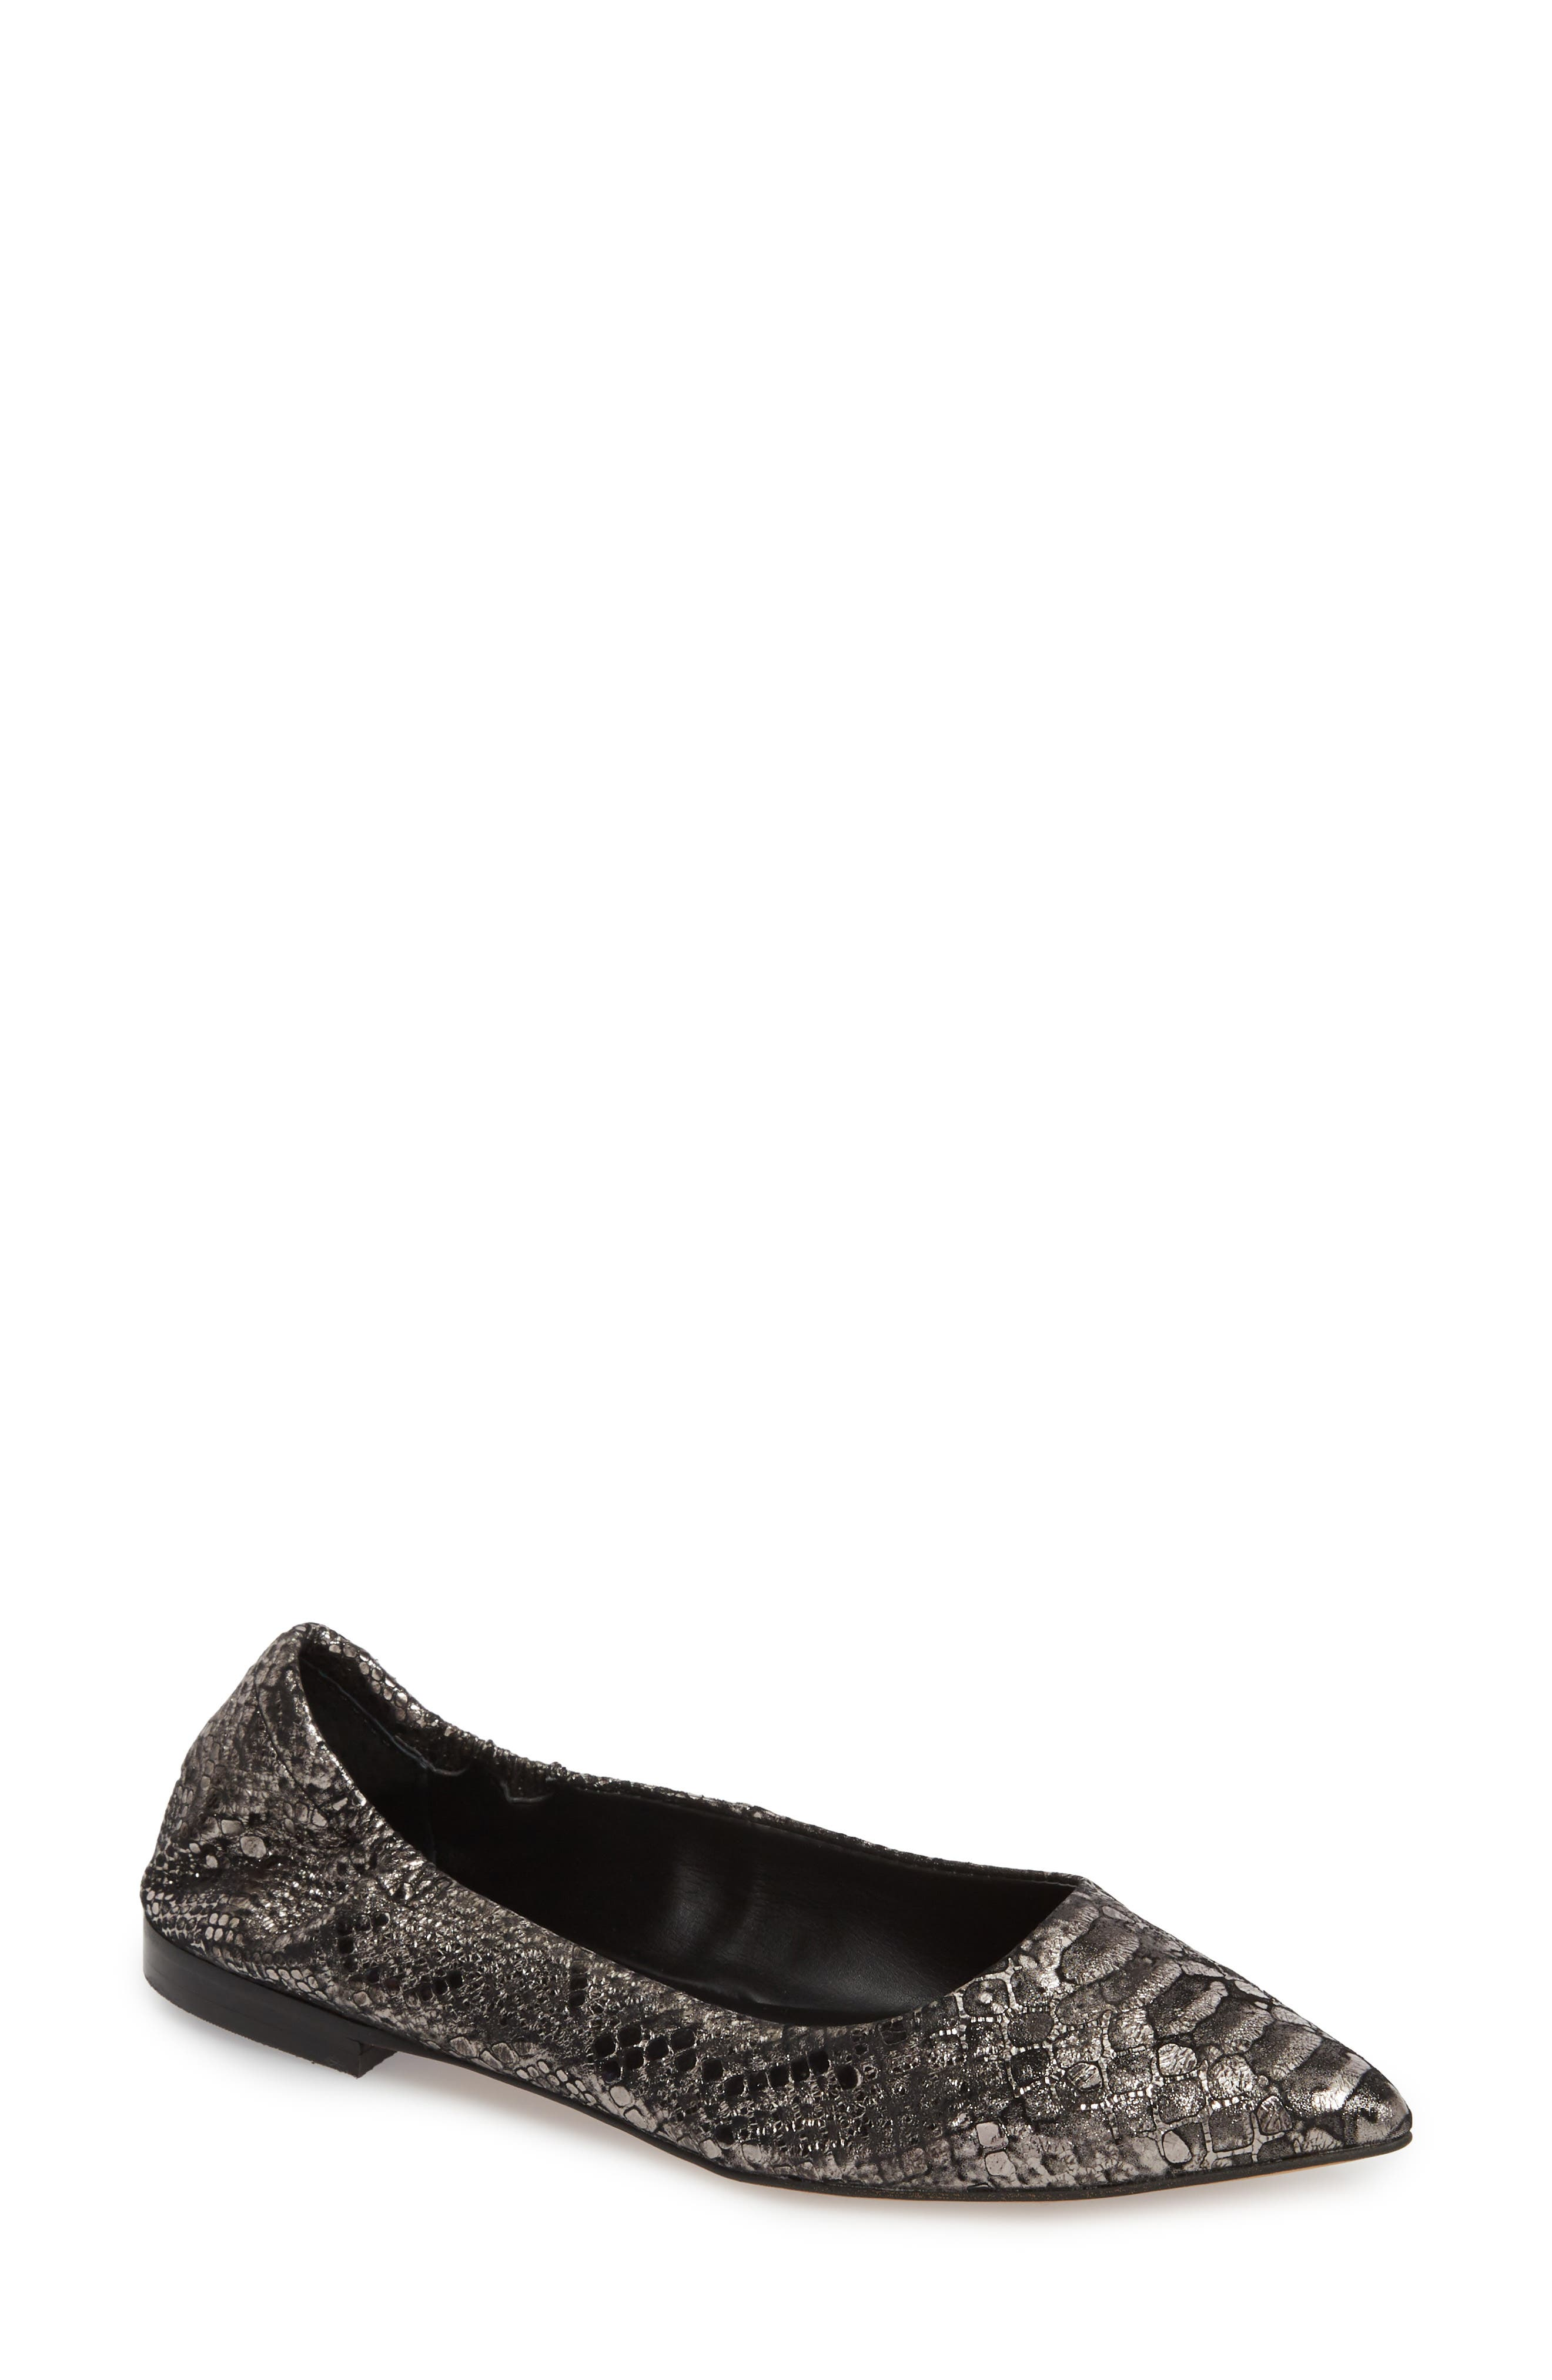 Isola Padra Pointy Toe Flat,                         Main,                         color, PEWTER LEATHER